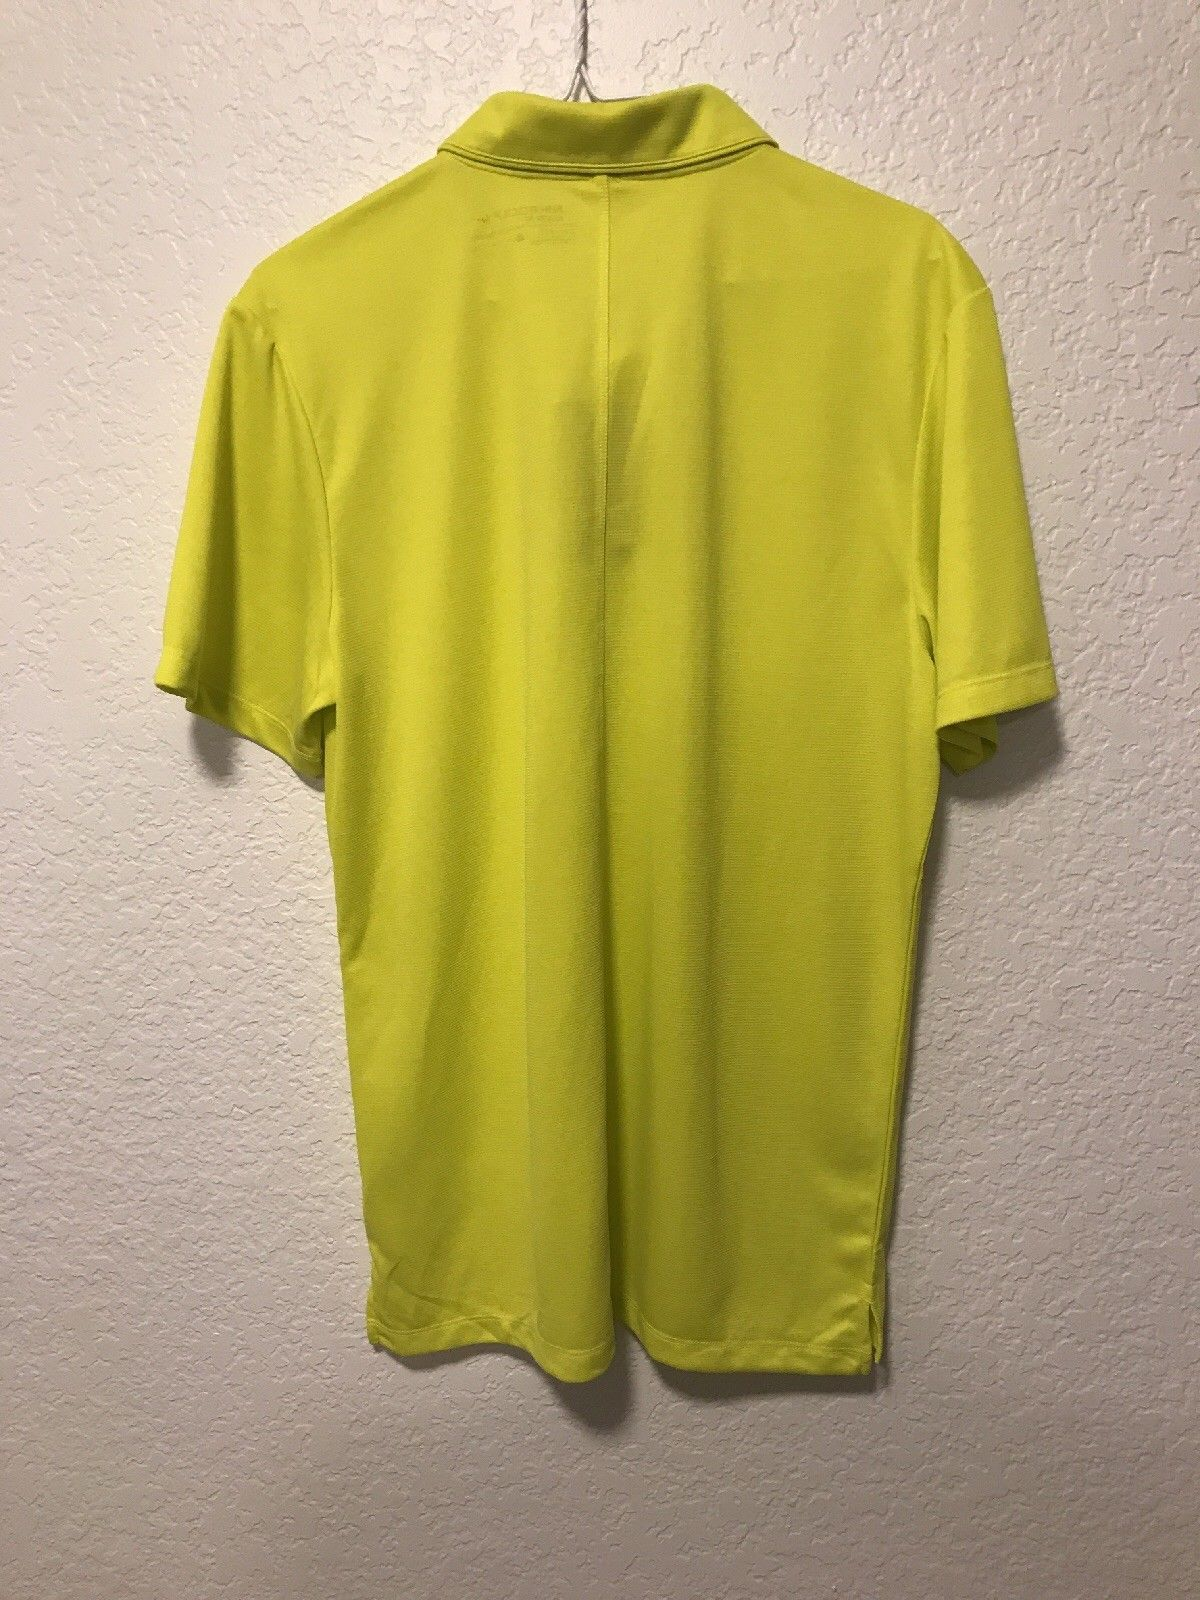 51aac6f29 NWT Nike Ultra 2 Slim Fit Golf Polo Blade Size Medium Color Yellow 850698- 358